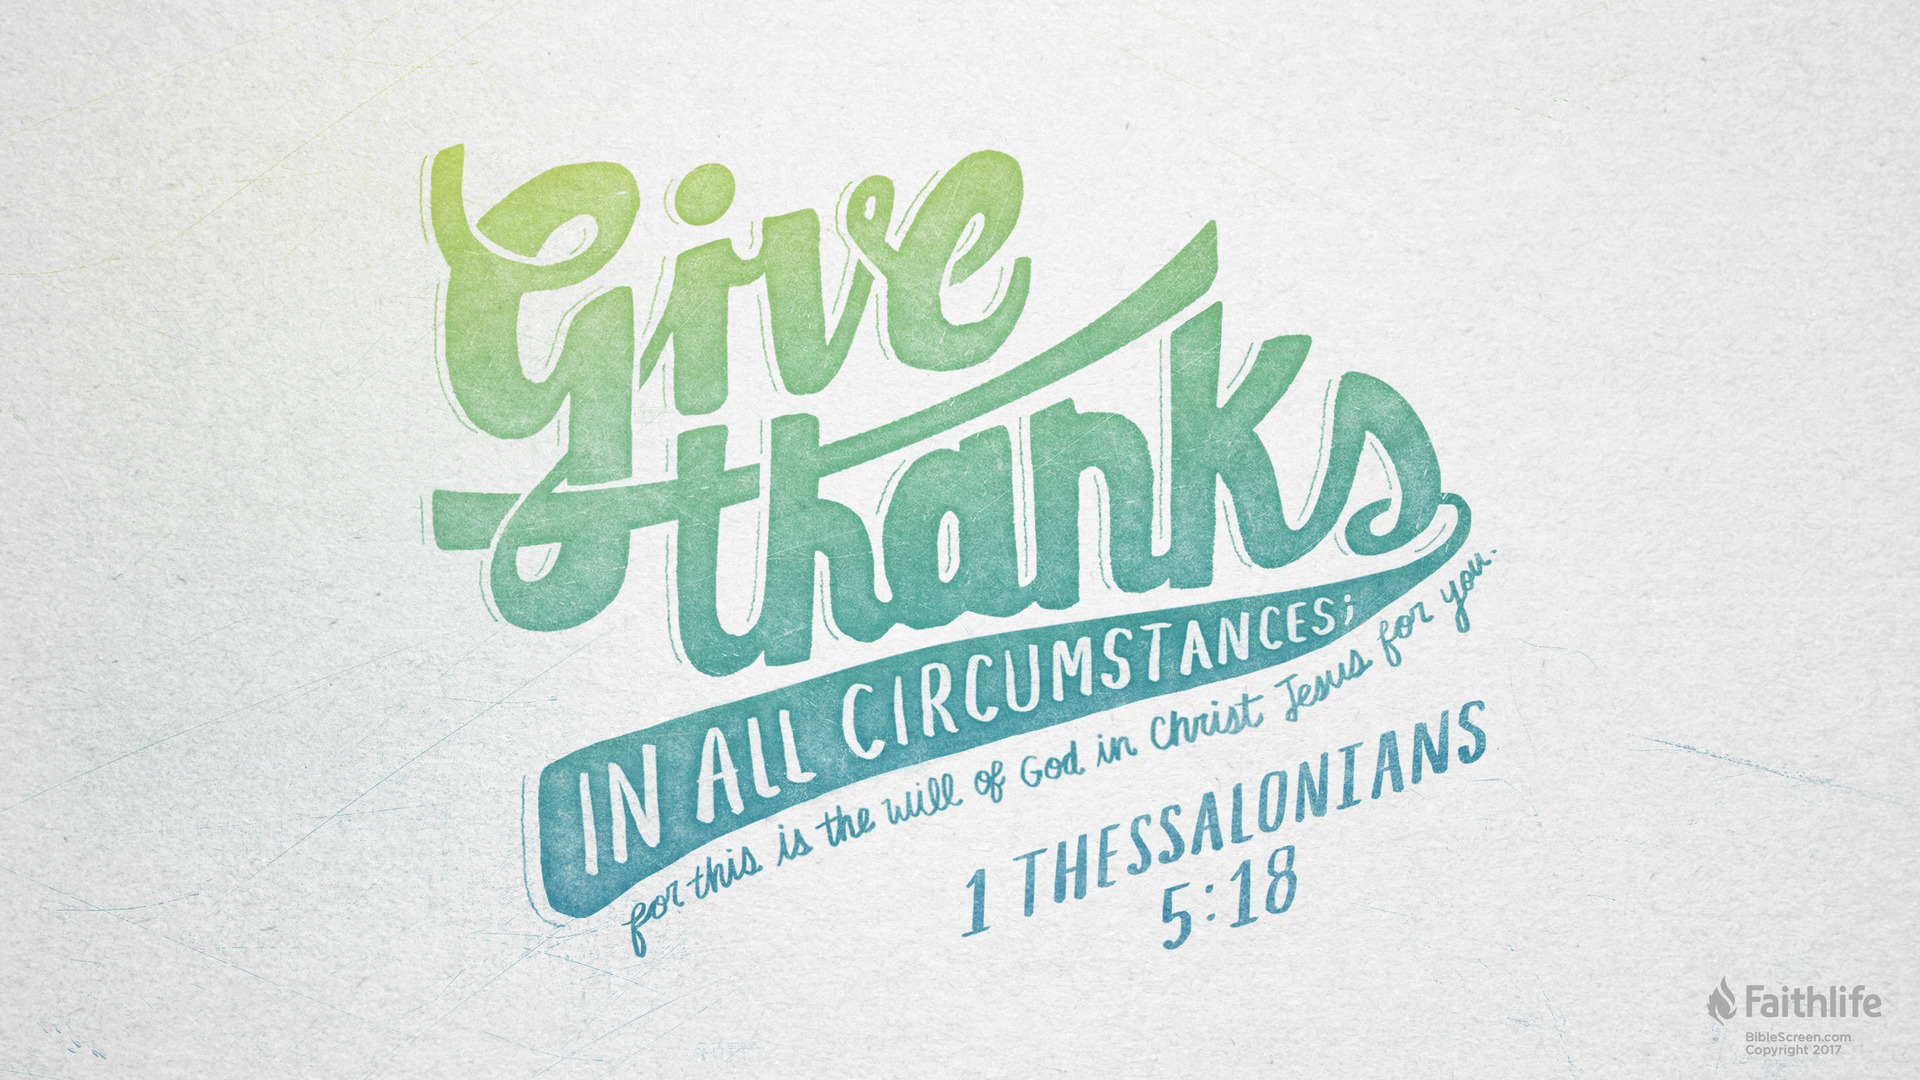 """Rejoice always, pray continually, give thanks in all circumstances; for this is God's will for you in Christ Jesus.""  - 1 Thessalonians 5:18"